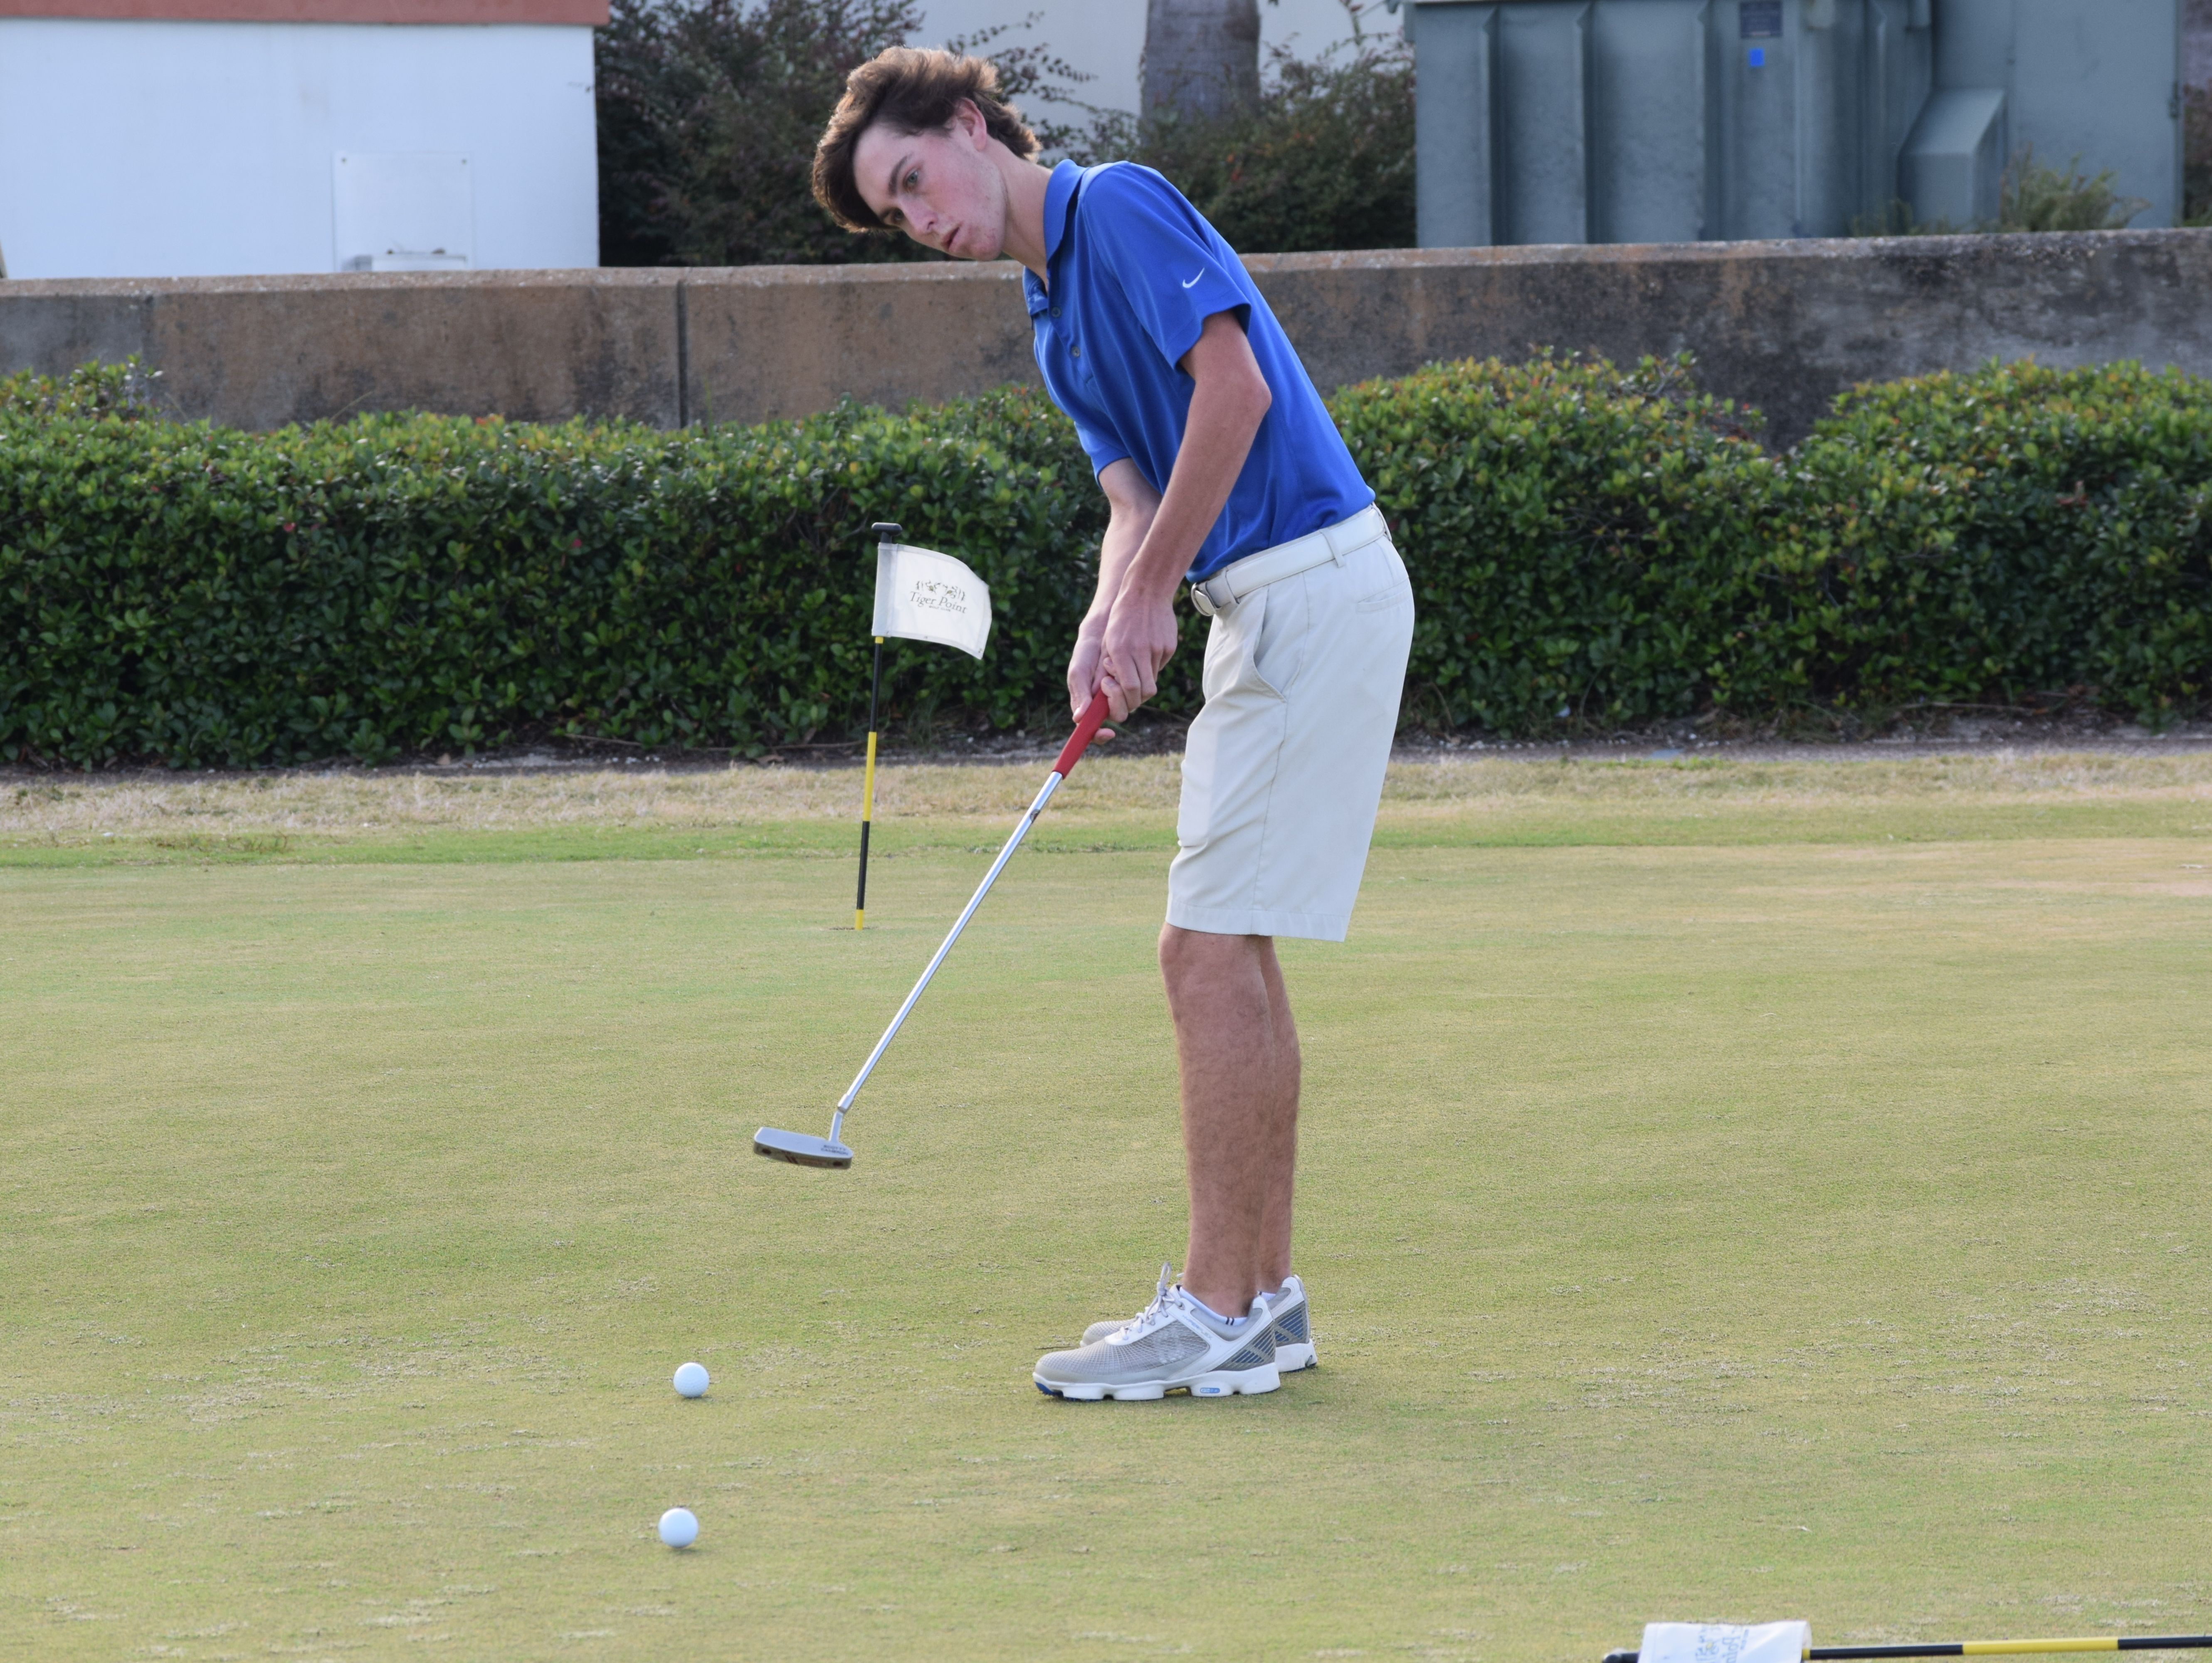 Gulf Breeze High's Nolan Remig is part of a team that has played in state tournament in the past five years and among four area teams in this year's tournament.